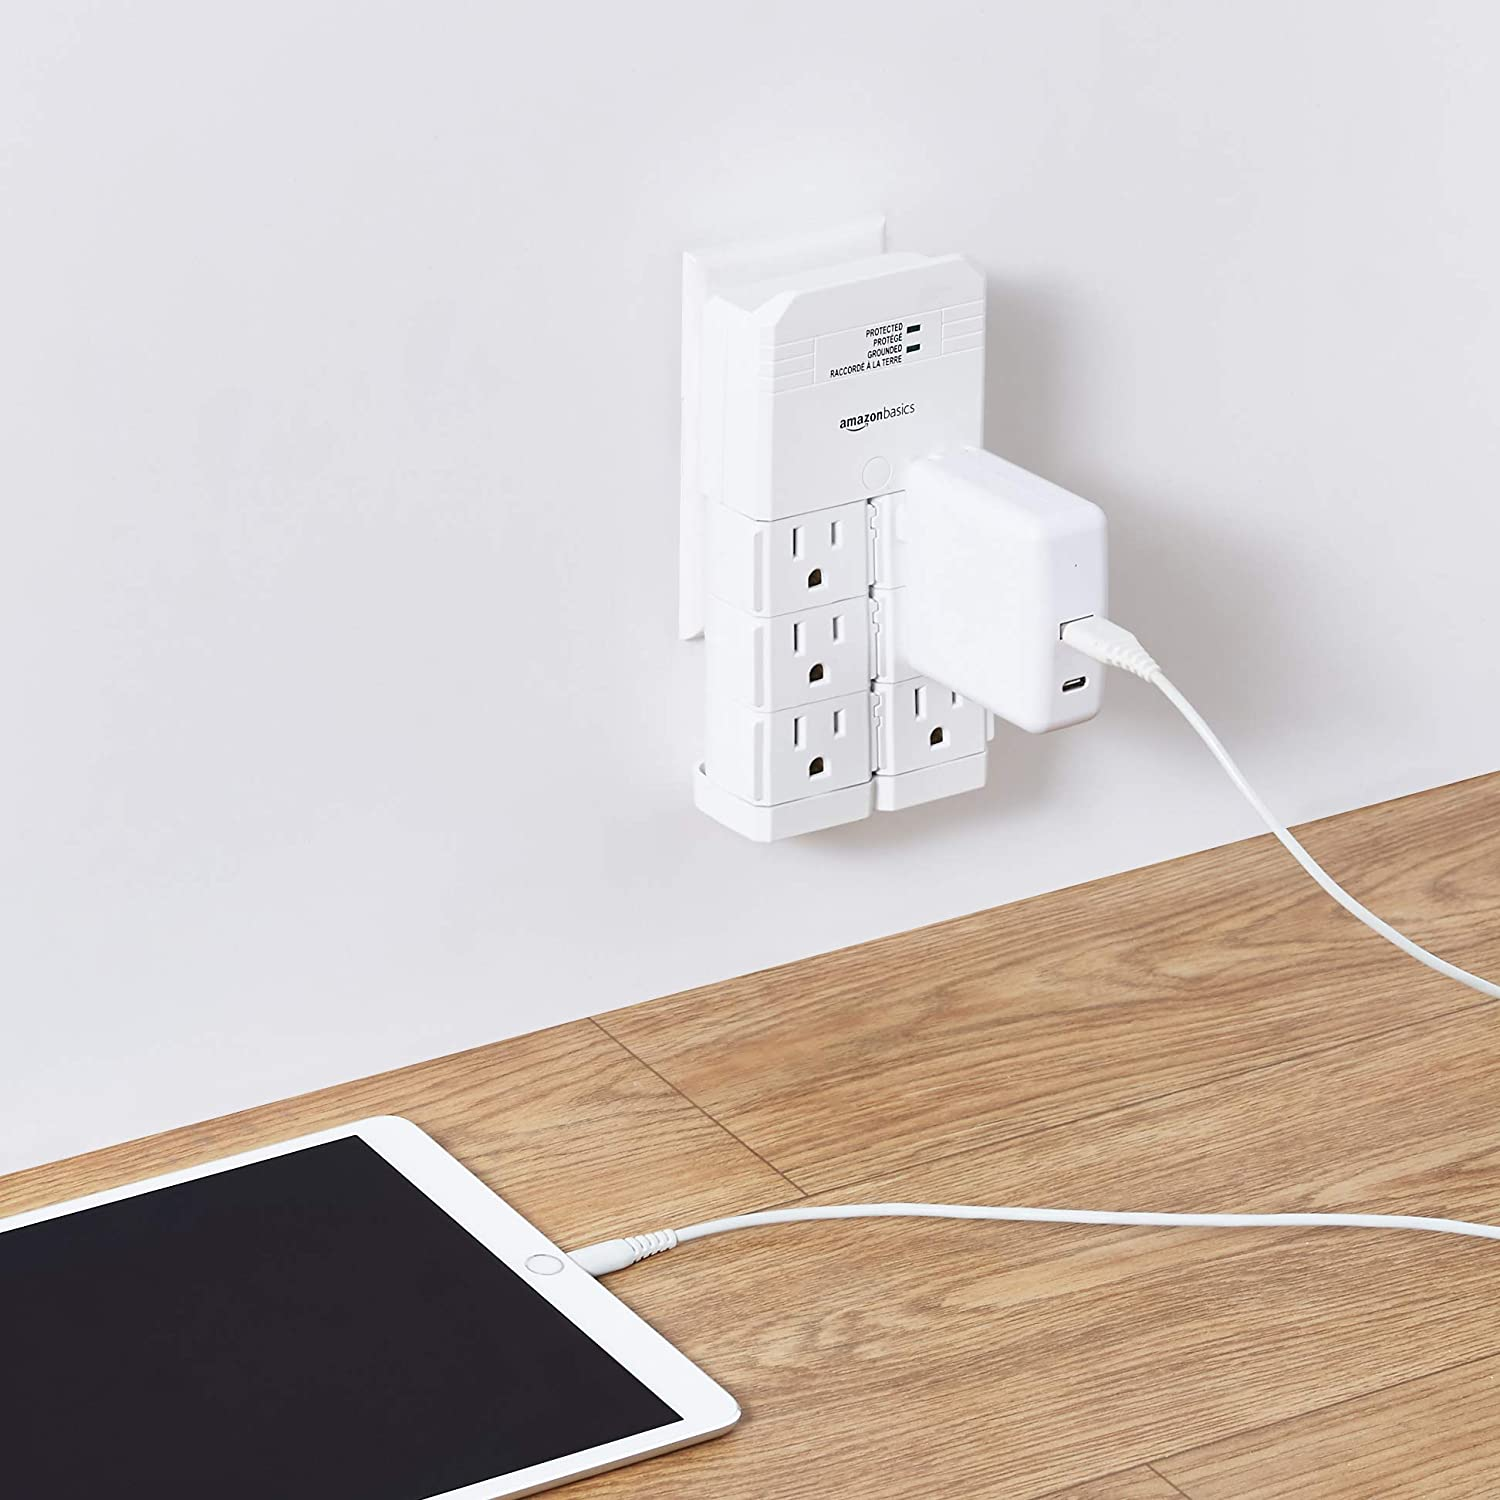 1080 Joules Basics Rotating 6-Outlet Surge Protector Power Strip with 2 USB Charging Ports